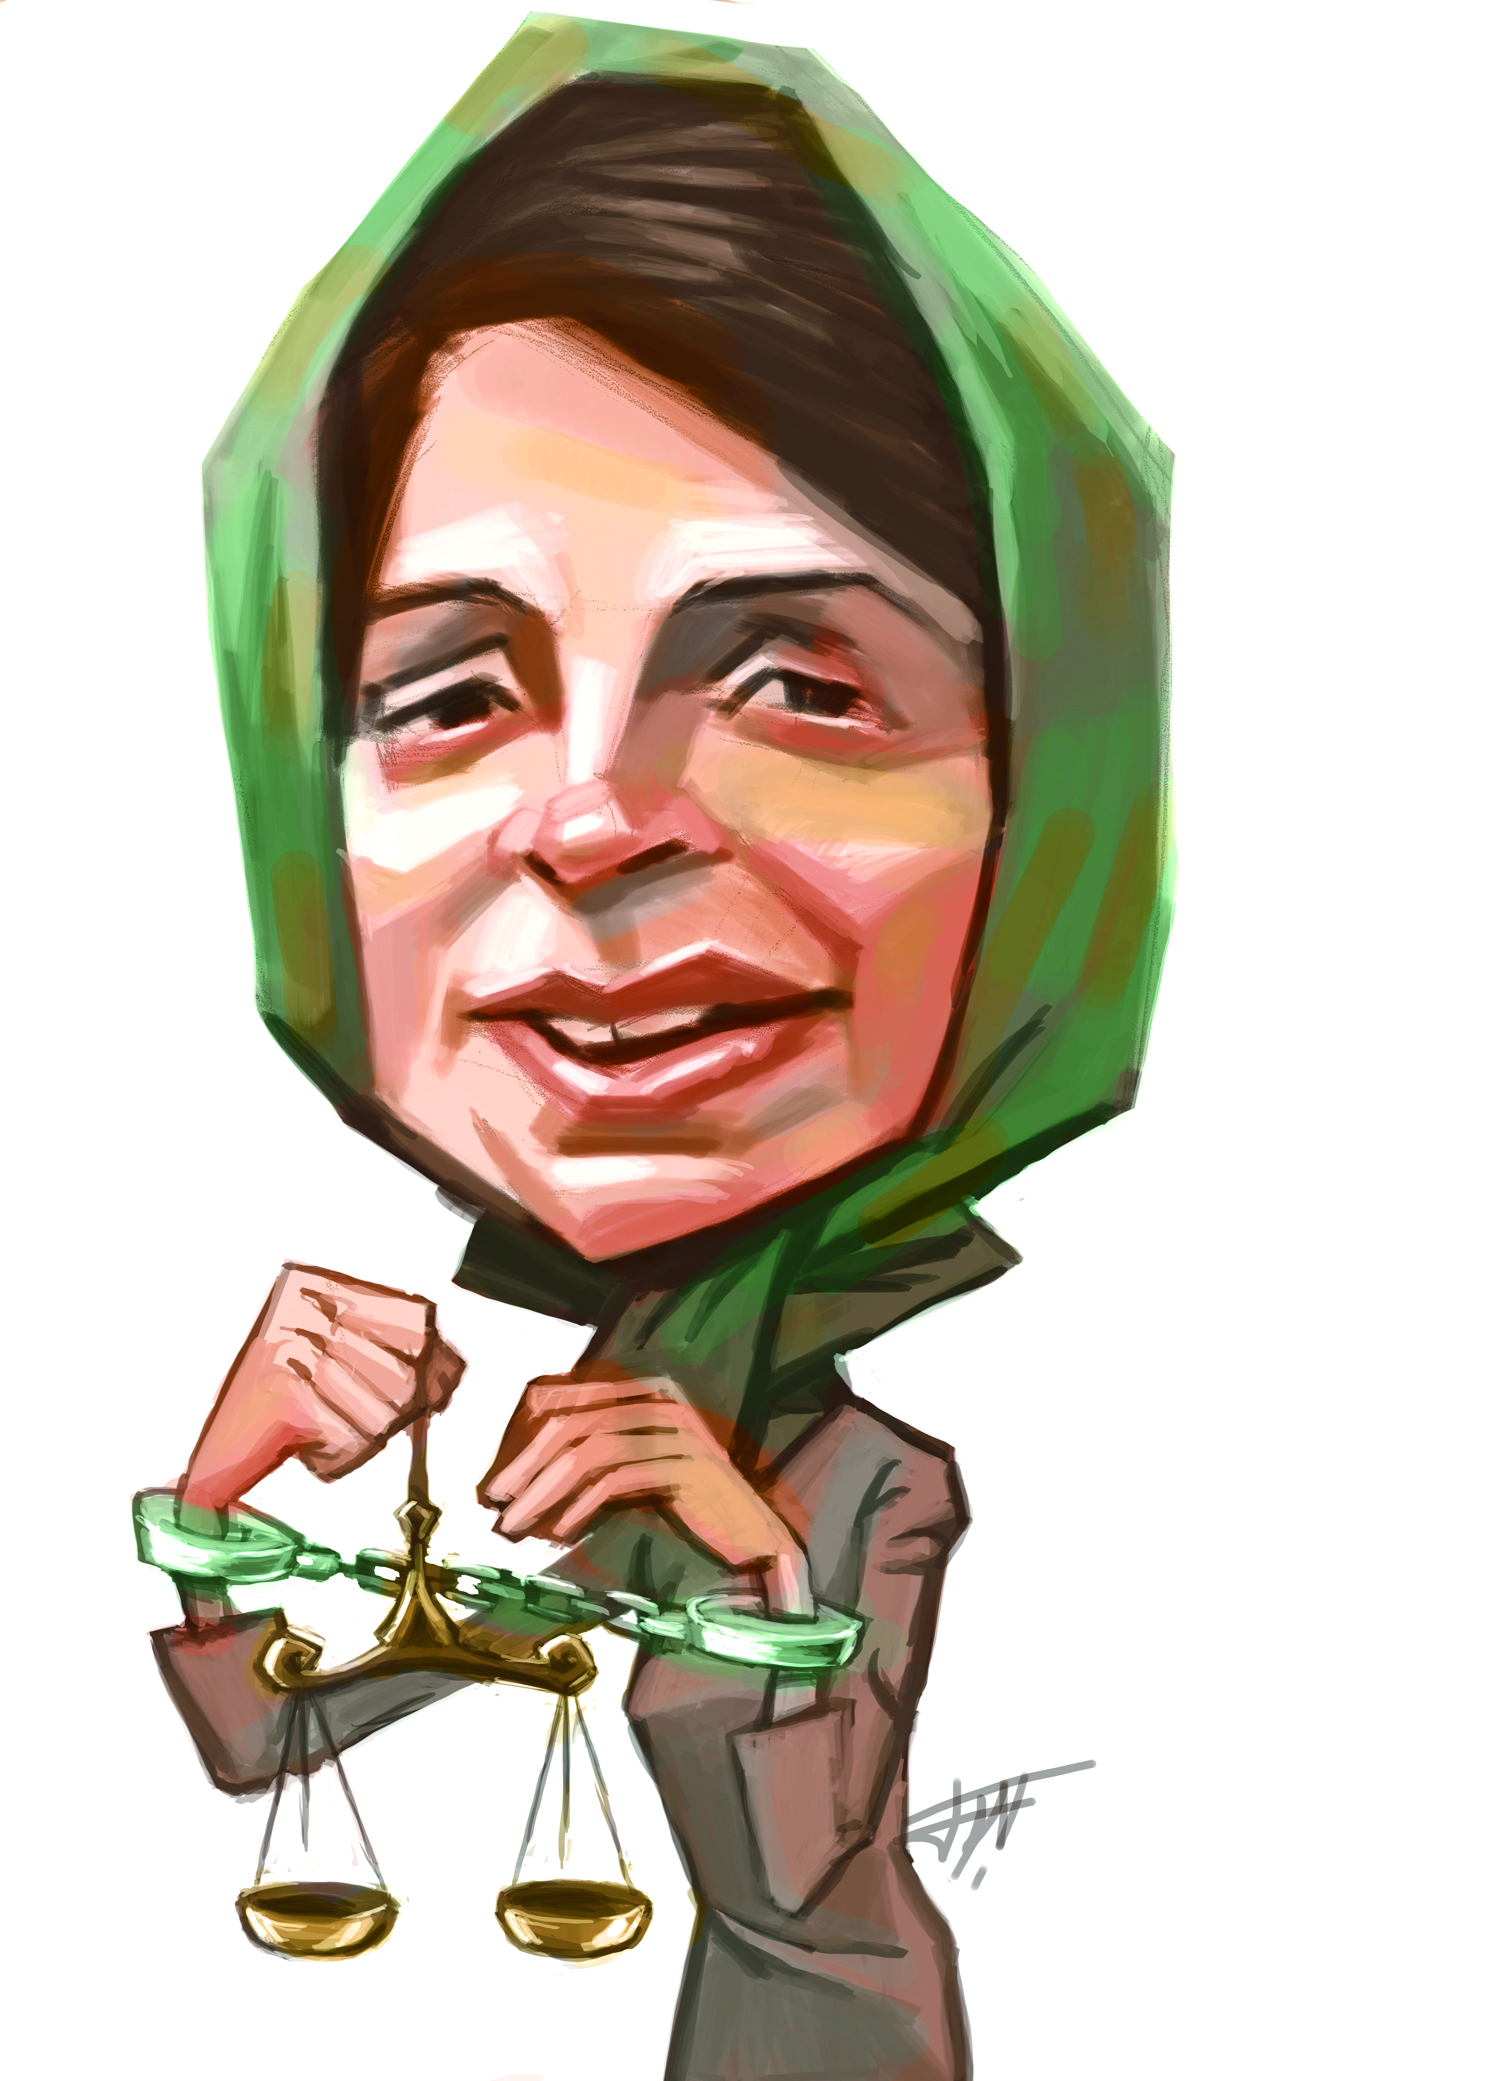 """Nasrin Sotoudeh"" by Afshin Sabouki: Sotoudeh is an Iranian human rights lawyer and an advocate for women, children and prisoners of conscience. She is serving a six-year sentence for charges including ""membership in the Defenders of Human Rights Center."""